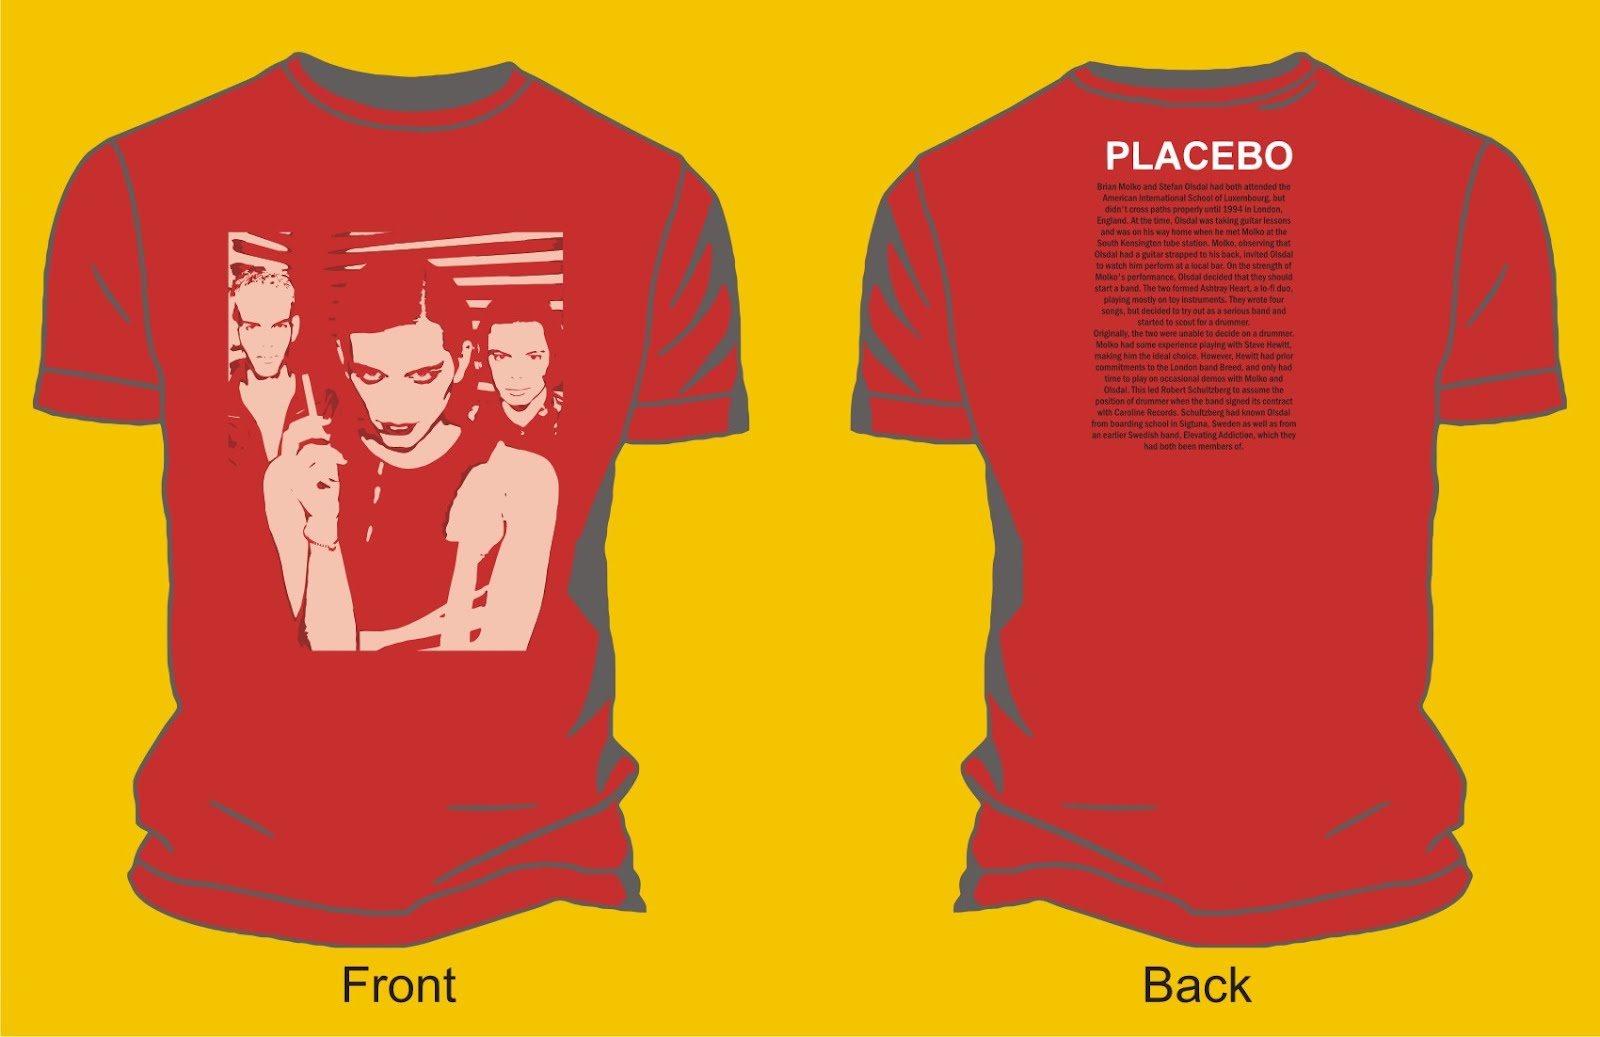 placebo-placebo_vector